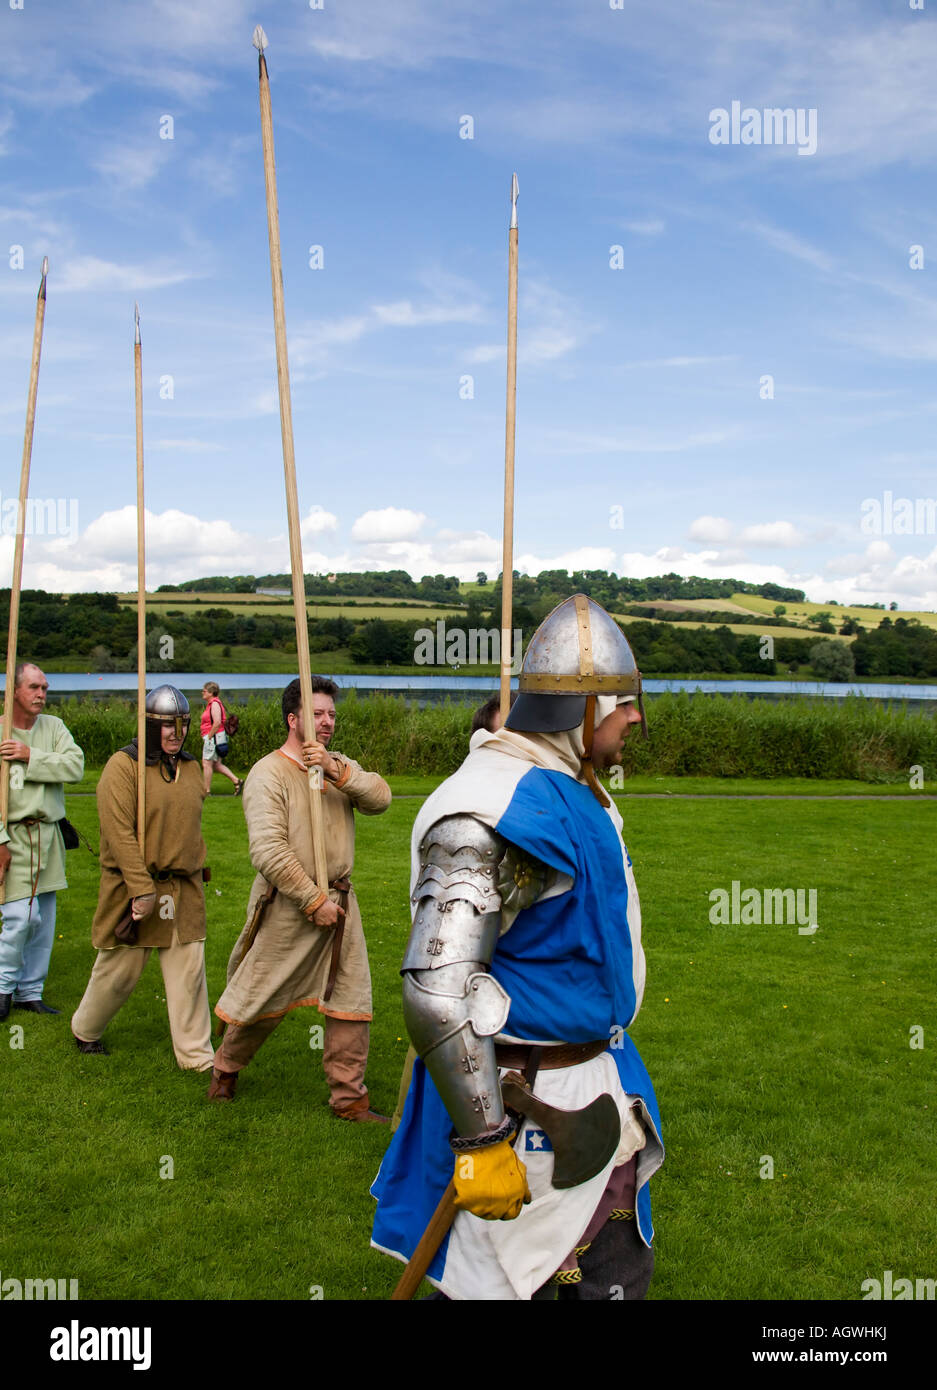 Medieval pikemen marching pikes held aloft - Stock Image